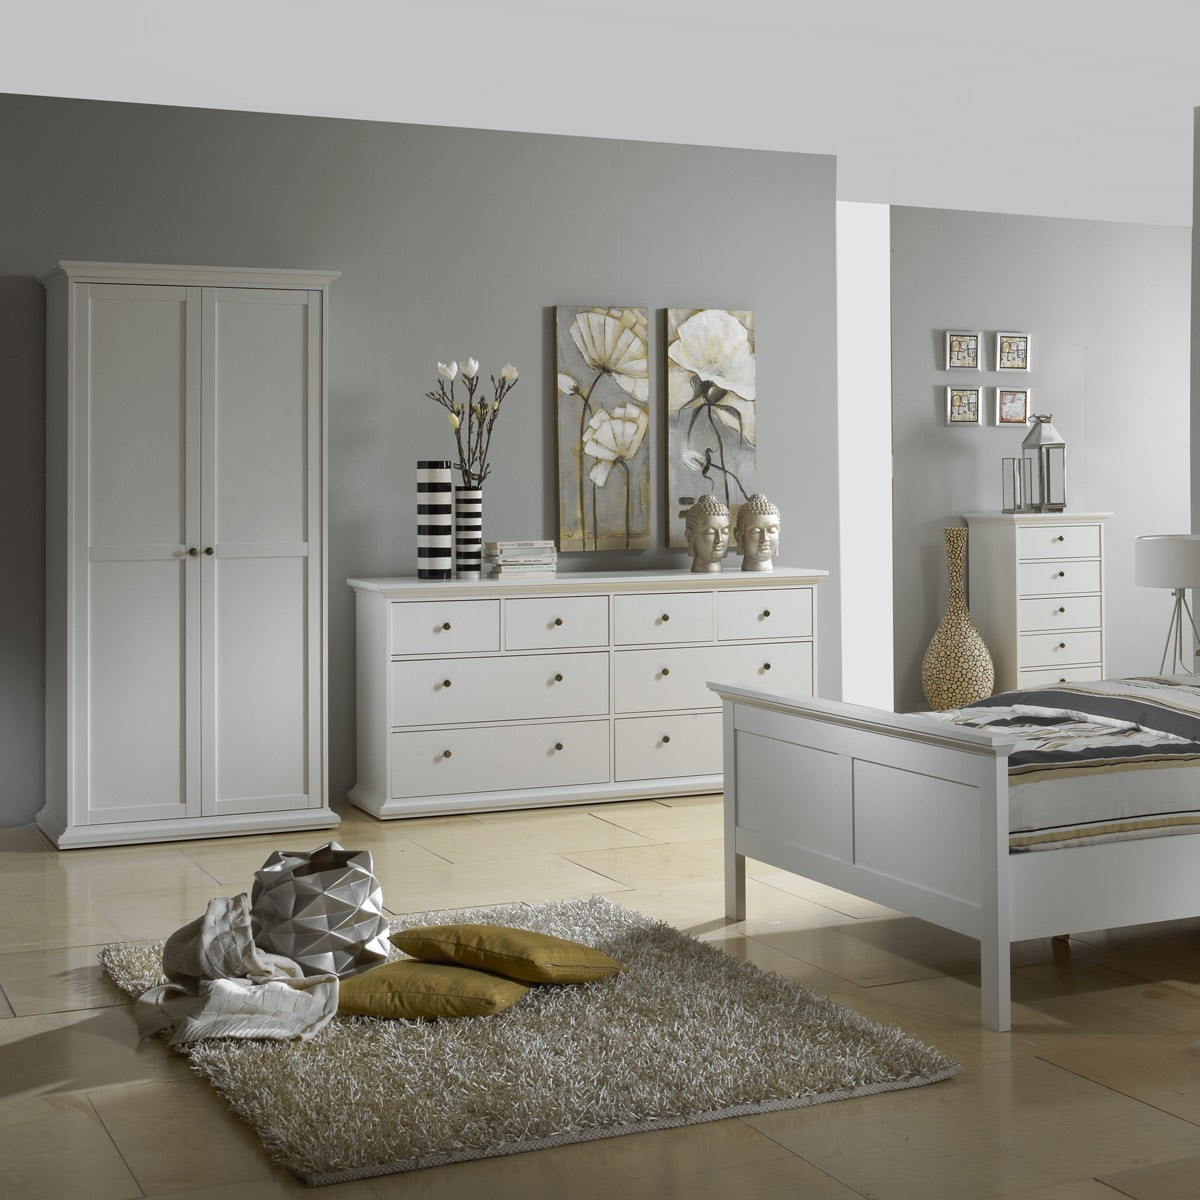 kleiderschrank schrank schlafzimmer venedig in wei holz teilmassiv ebay. Black Bedroom Furniture Sets. Home Design Ideas